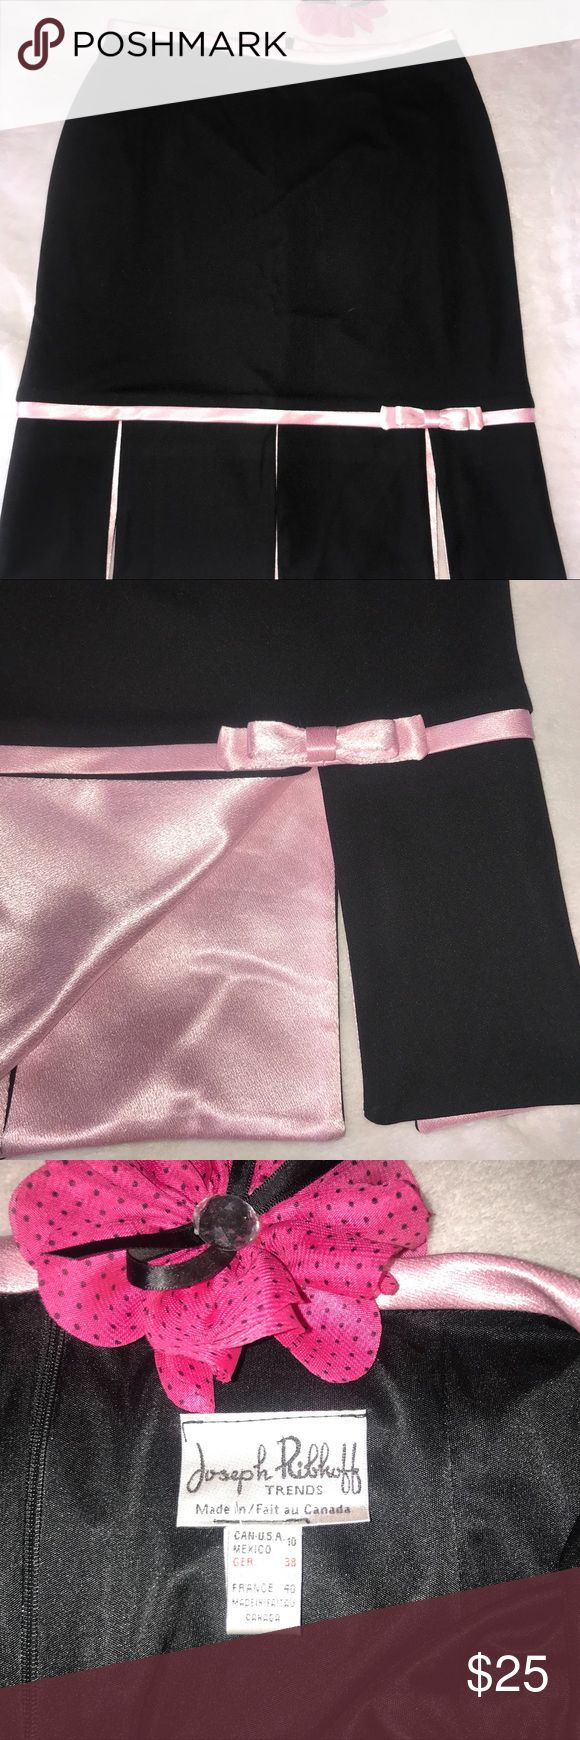 Best 25 detail car wash ideas on pinterest professional car black pencil skirt with pink bow solutioingenieria Gallery